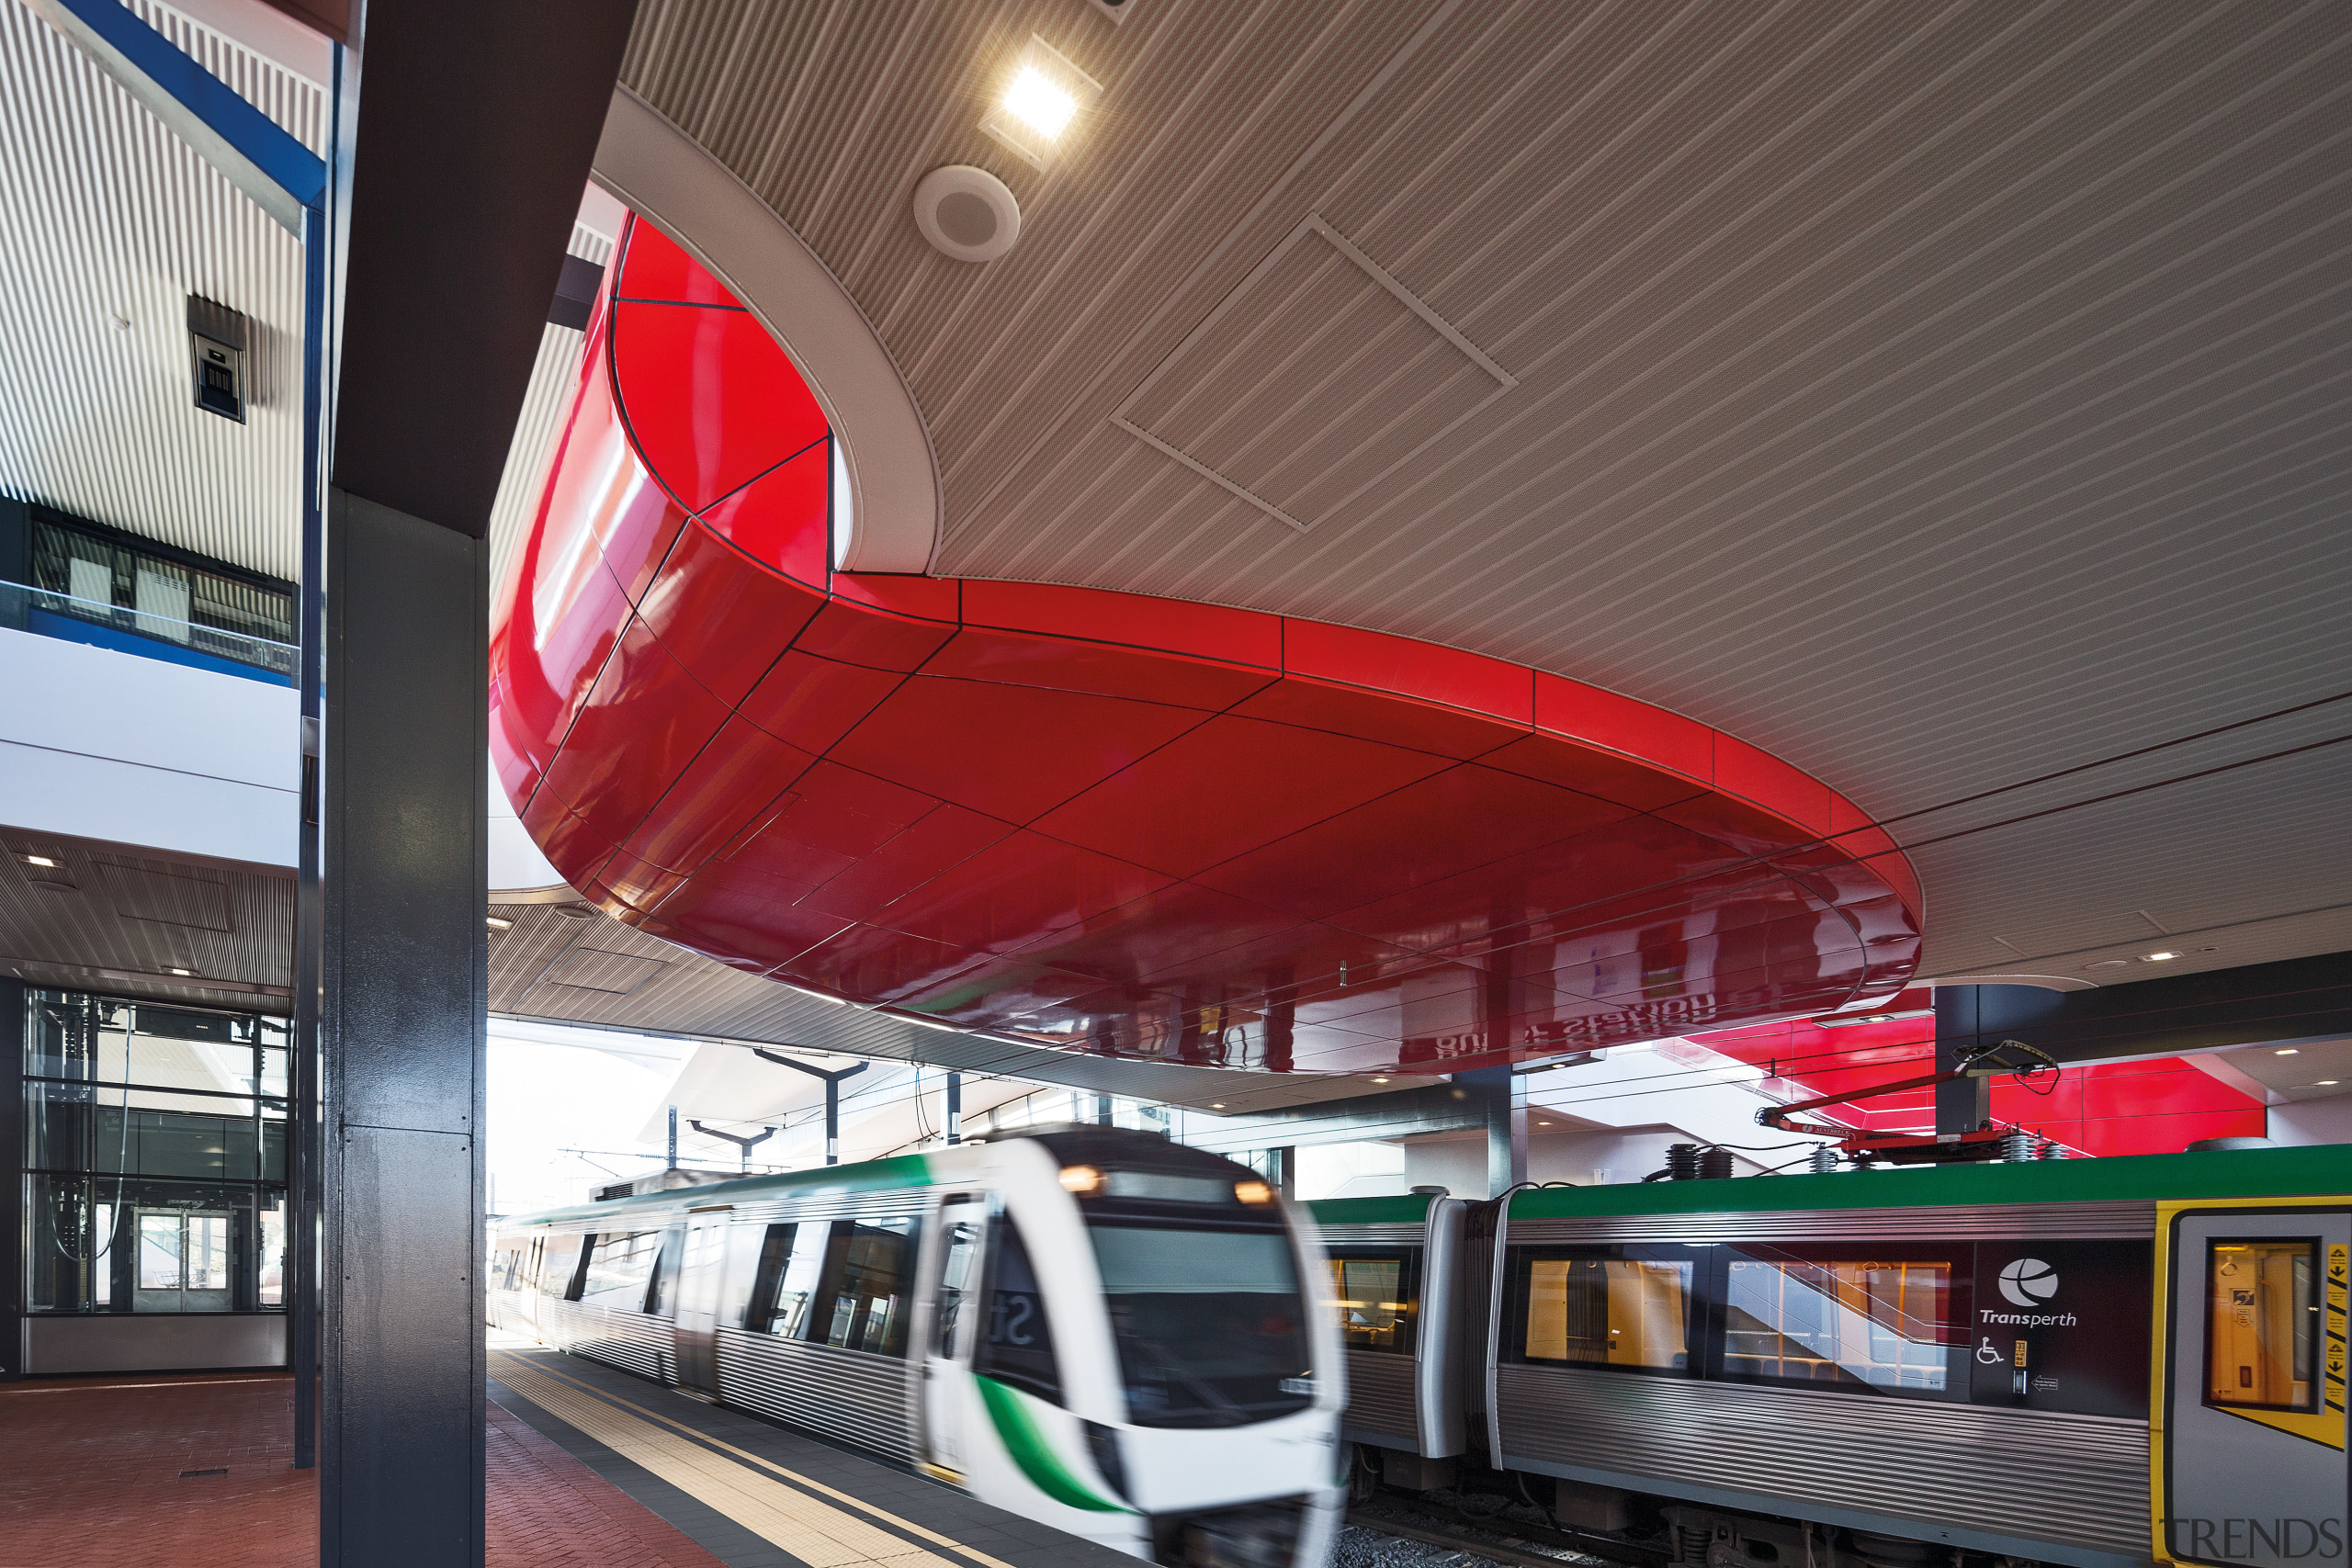 This curved red canopy in the new Butler architecture, metropolitan area, public transport, red, train, train station, transport, black